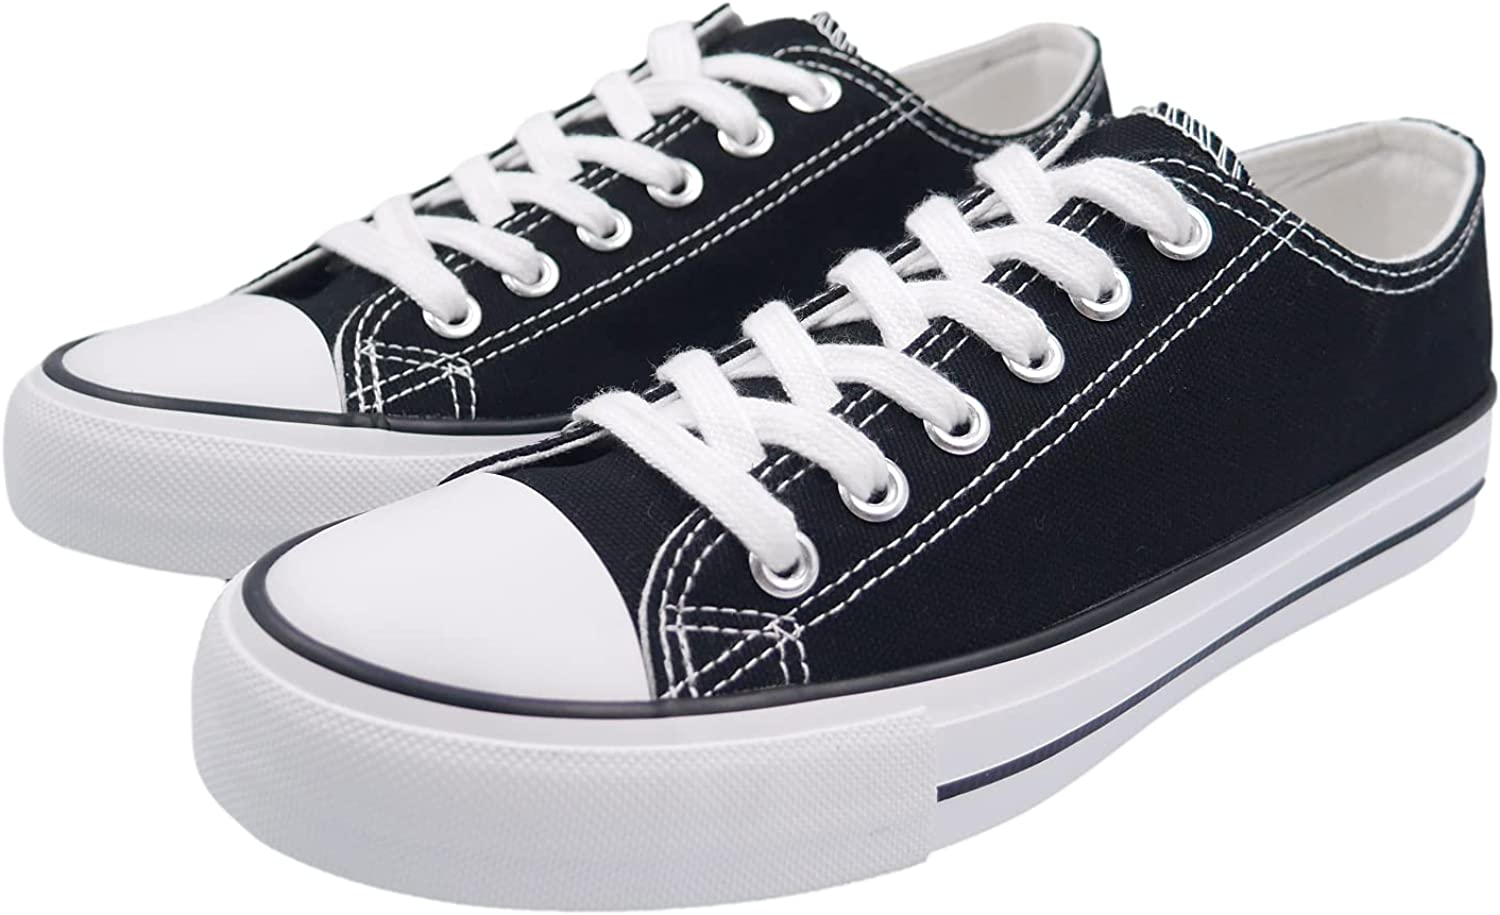 ANTLULU Max 72% OFF Low Top Toe Cap Woman Classic Lace-up Tucson Mall Sh Women Sneakers